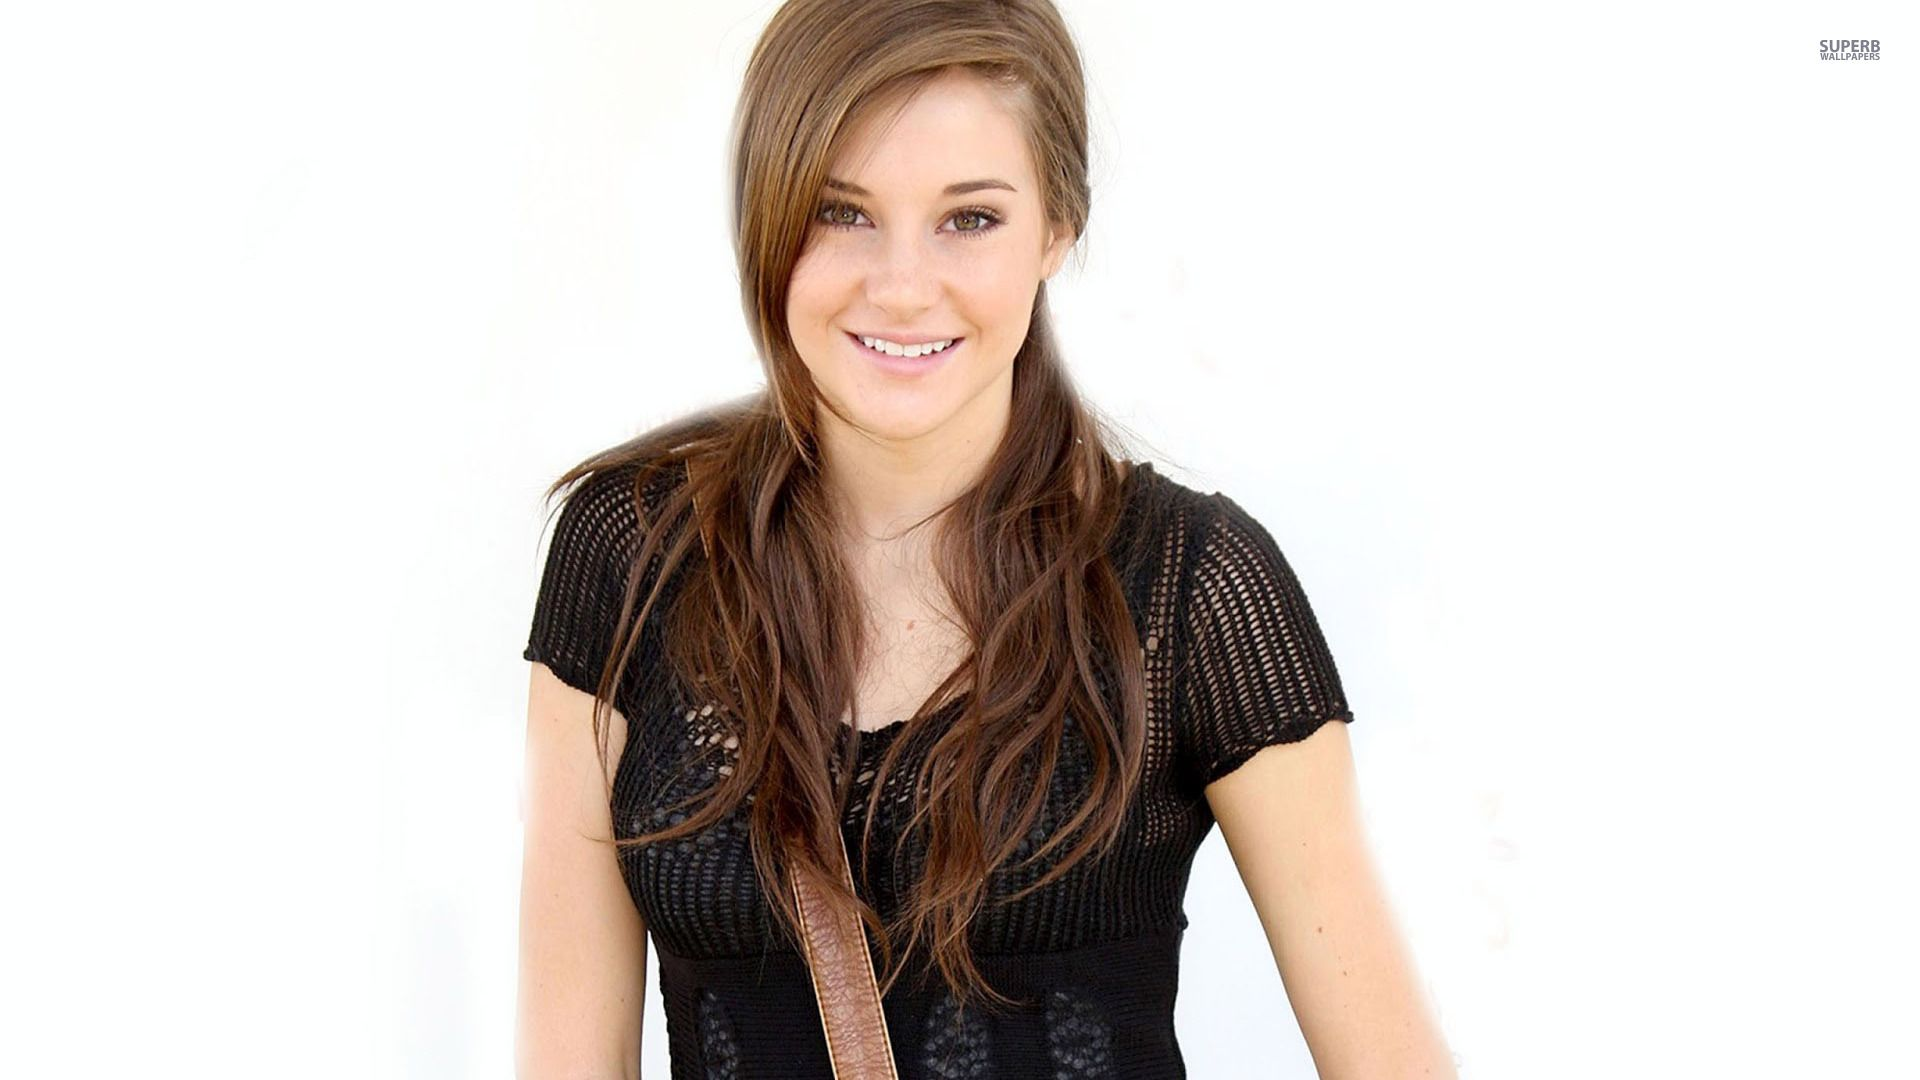 Shailene woodley wallpapers page hd wallpapers wallpapers for shailene woodley wallpapers page hd wallpapers thecheapjerseys Choice Image